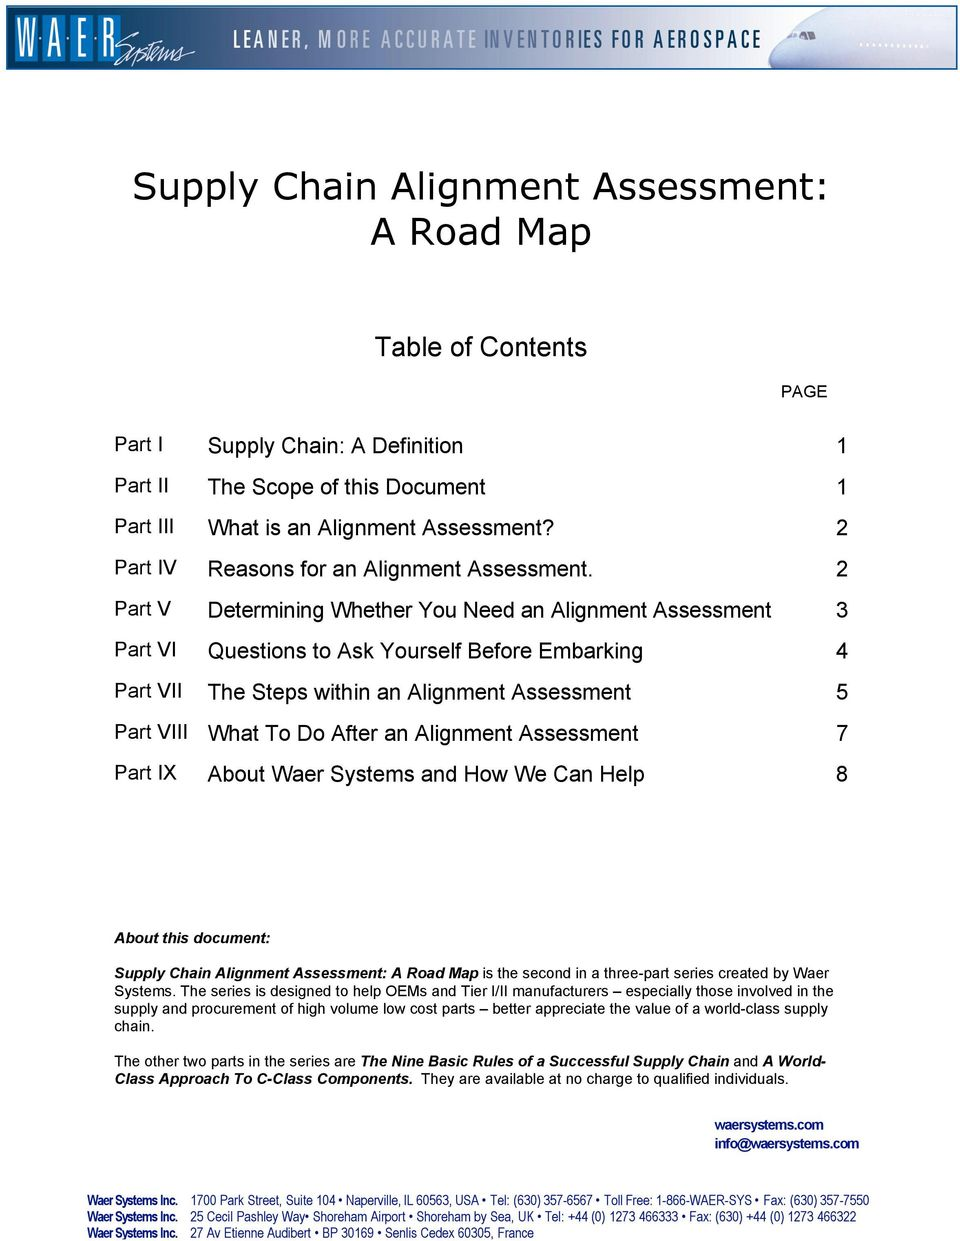 2 Part V Determining Whether You Need an Alignment Assessment 3 Part VI Questions to Ask Yourself Before Embarking 4 Part VII The Steps within an Alignment Assessment 5 Part VIII What To Do After an